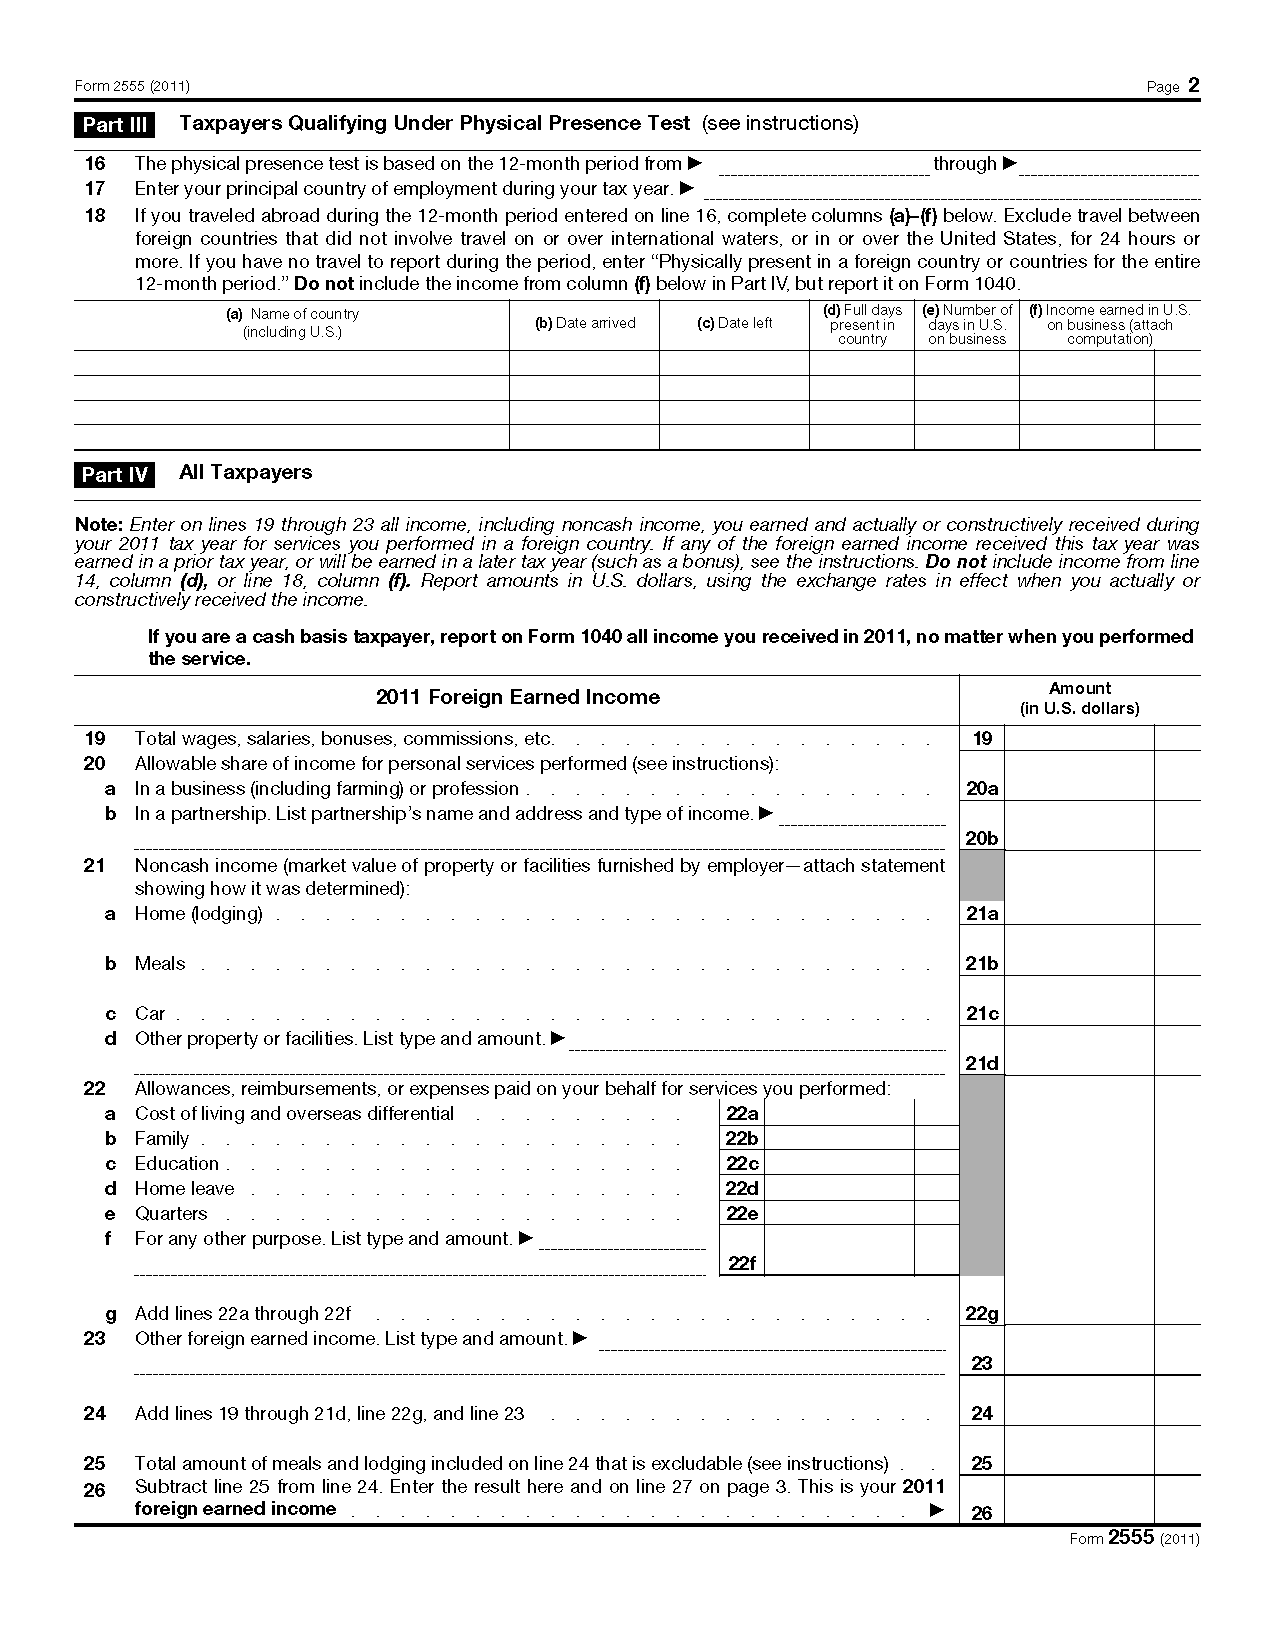 Foreign Earned Income Tax Worksheet Photos